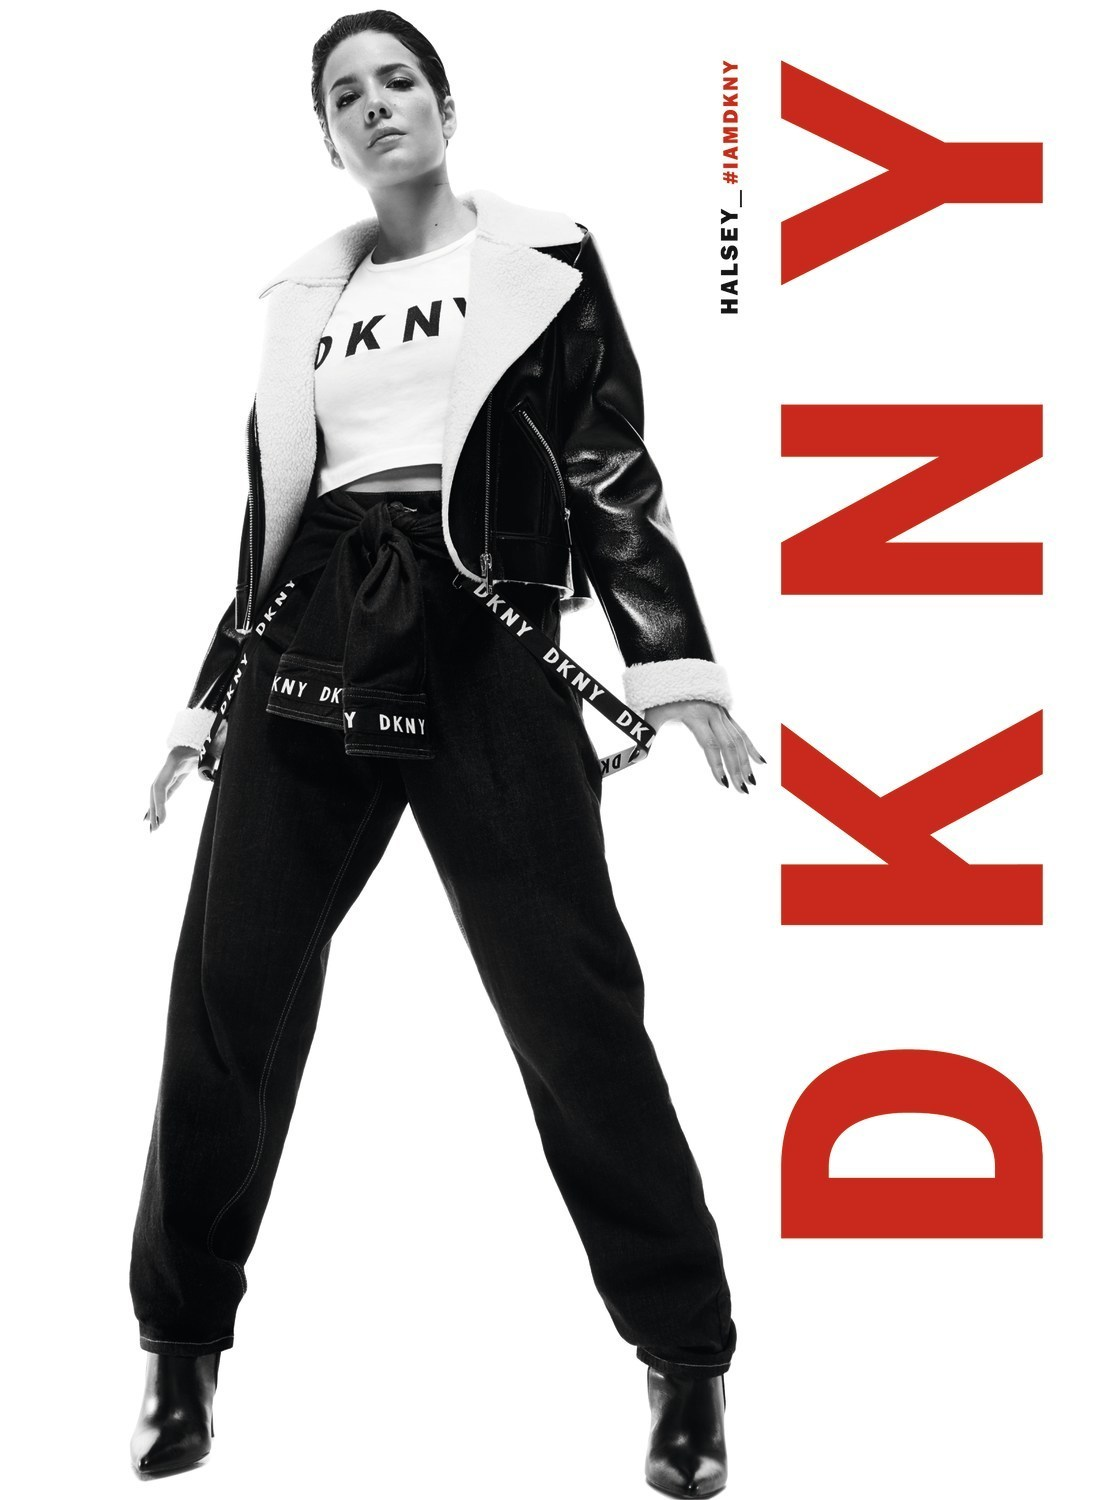 Black and white advertising photograph of the artist Halsey in black jeans, white t-shirt and aviator coat for the Fall 19 DKNY campaign.